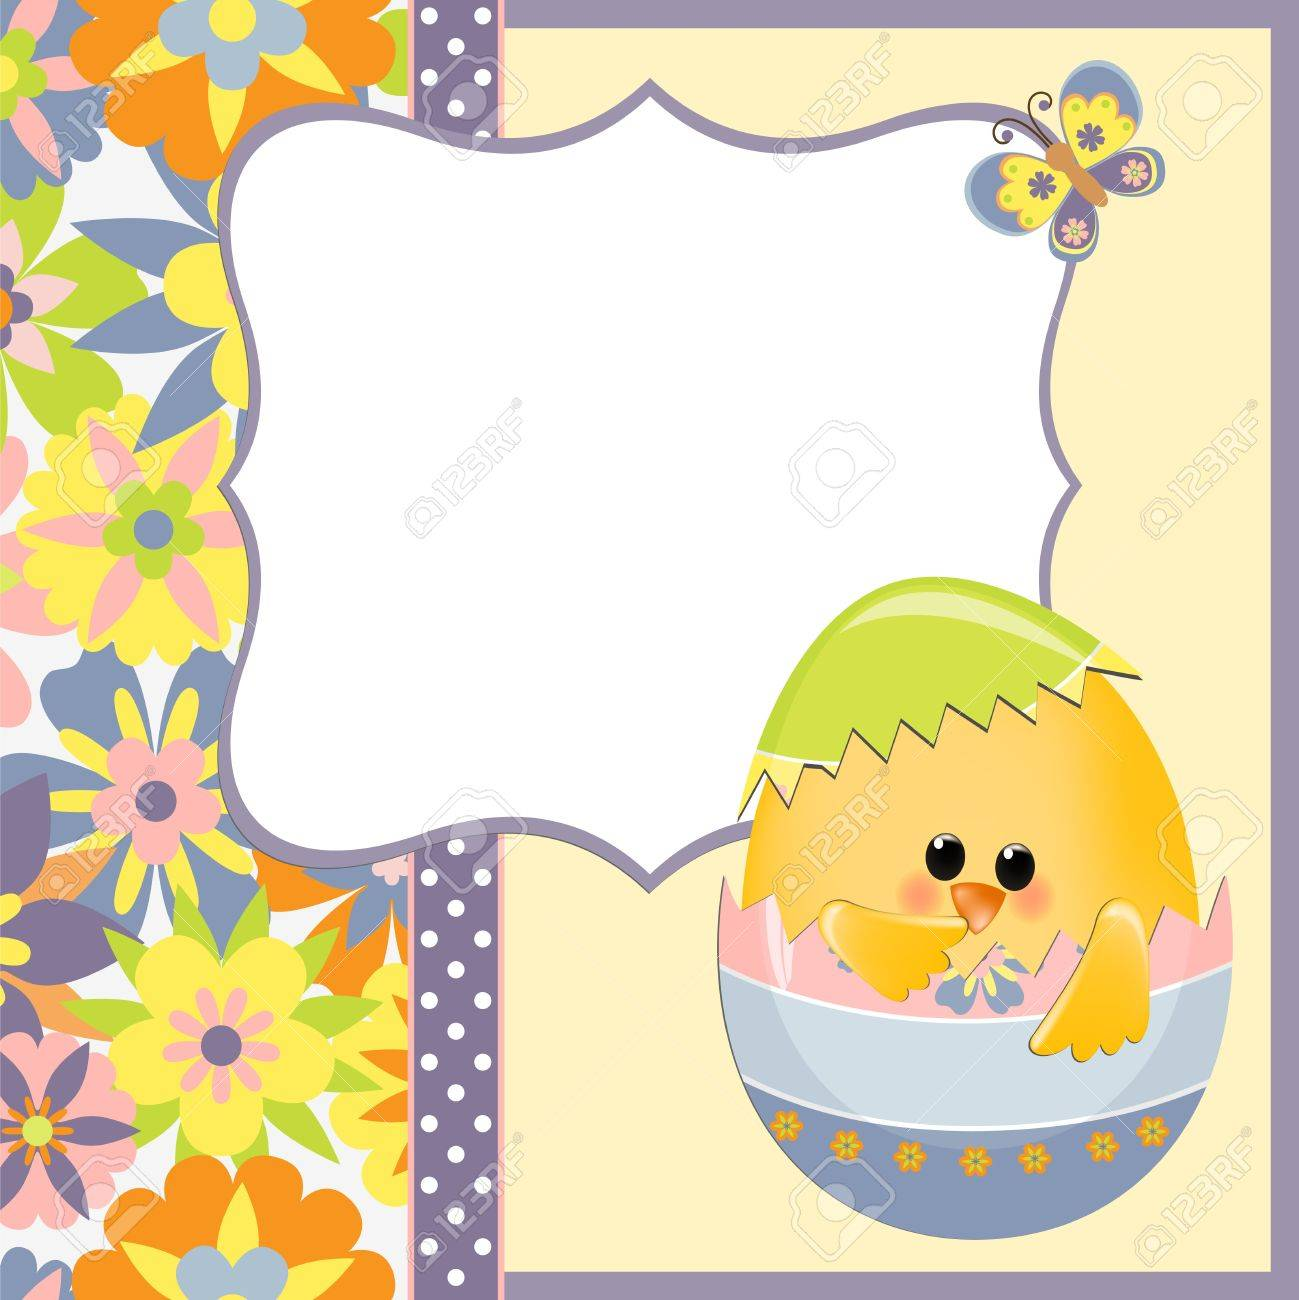 Doc13001390 Easter Greeting Card Template Template Easter – Easter Greeting Card Template